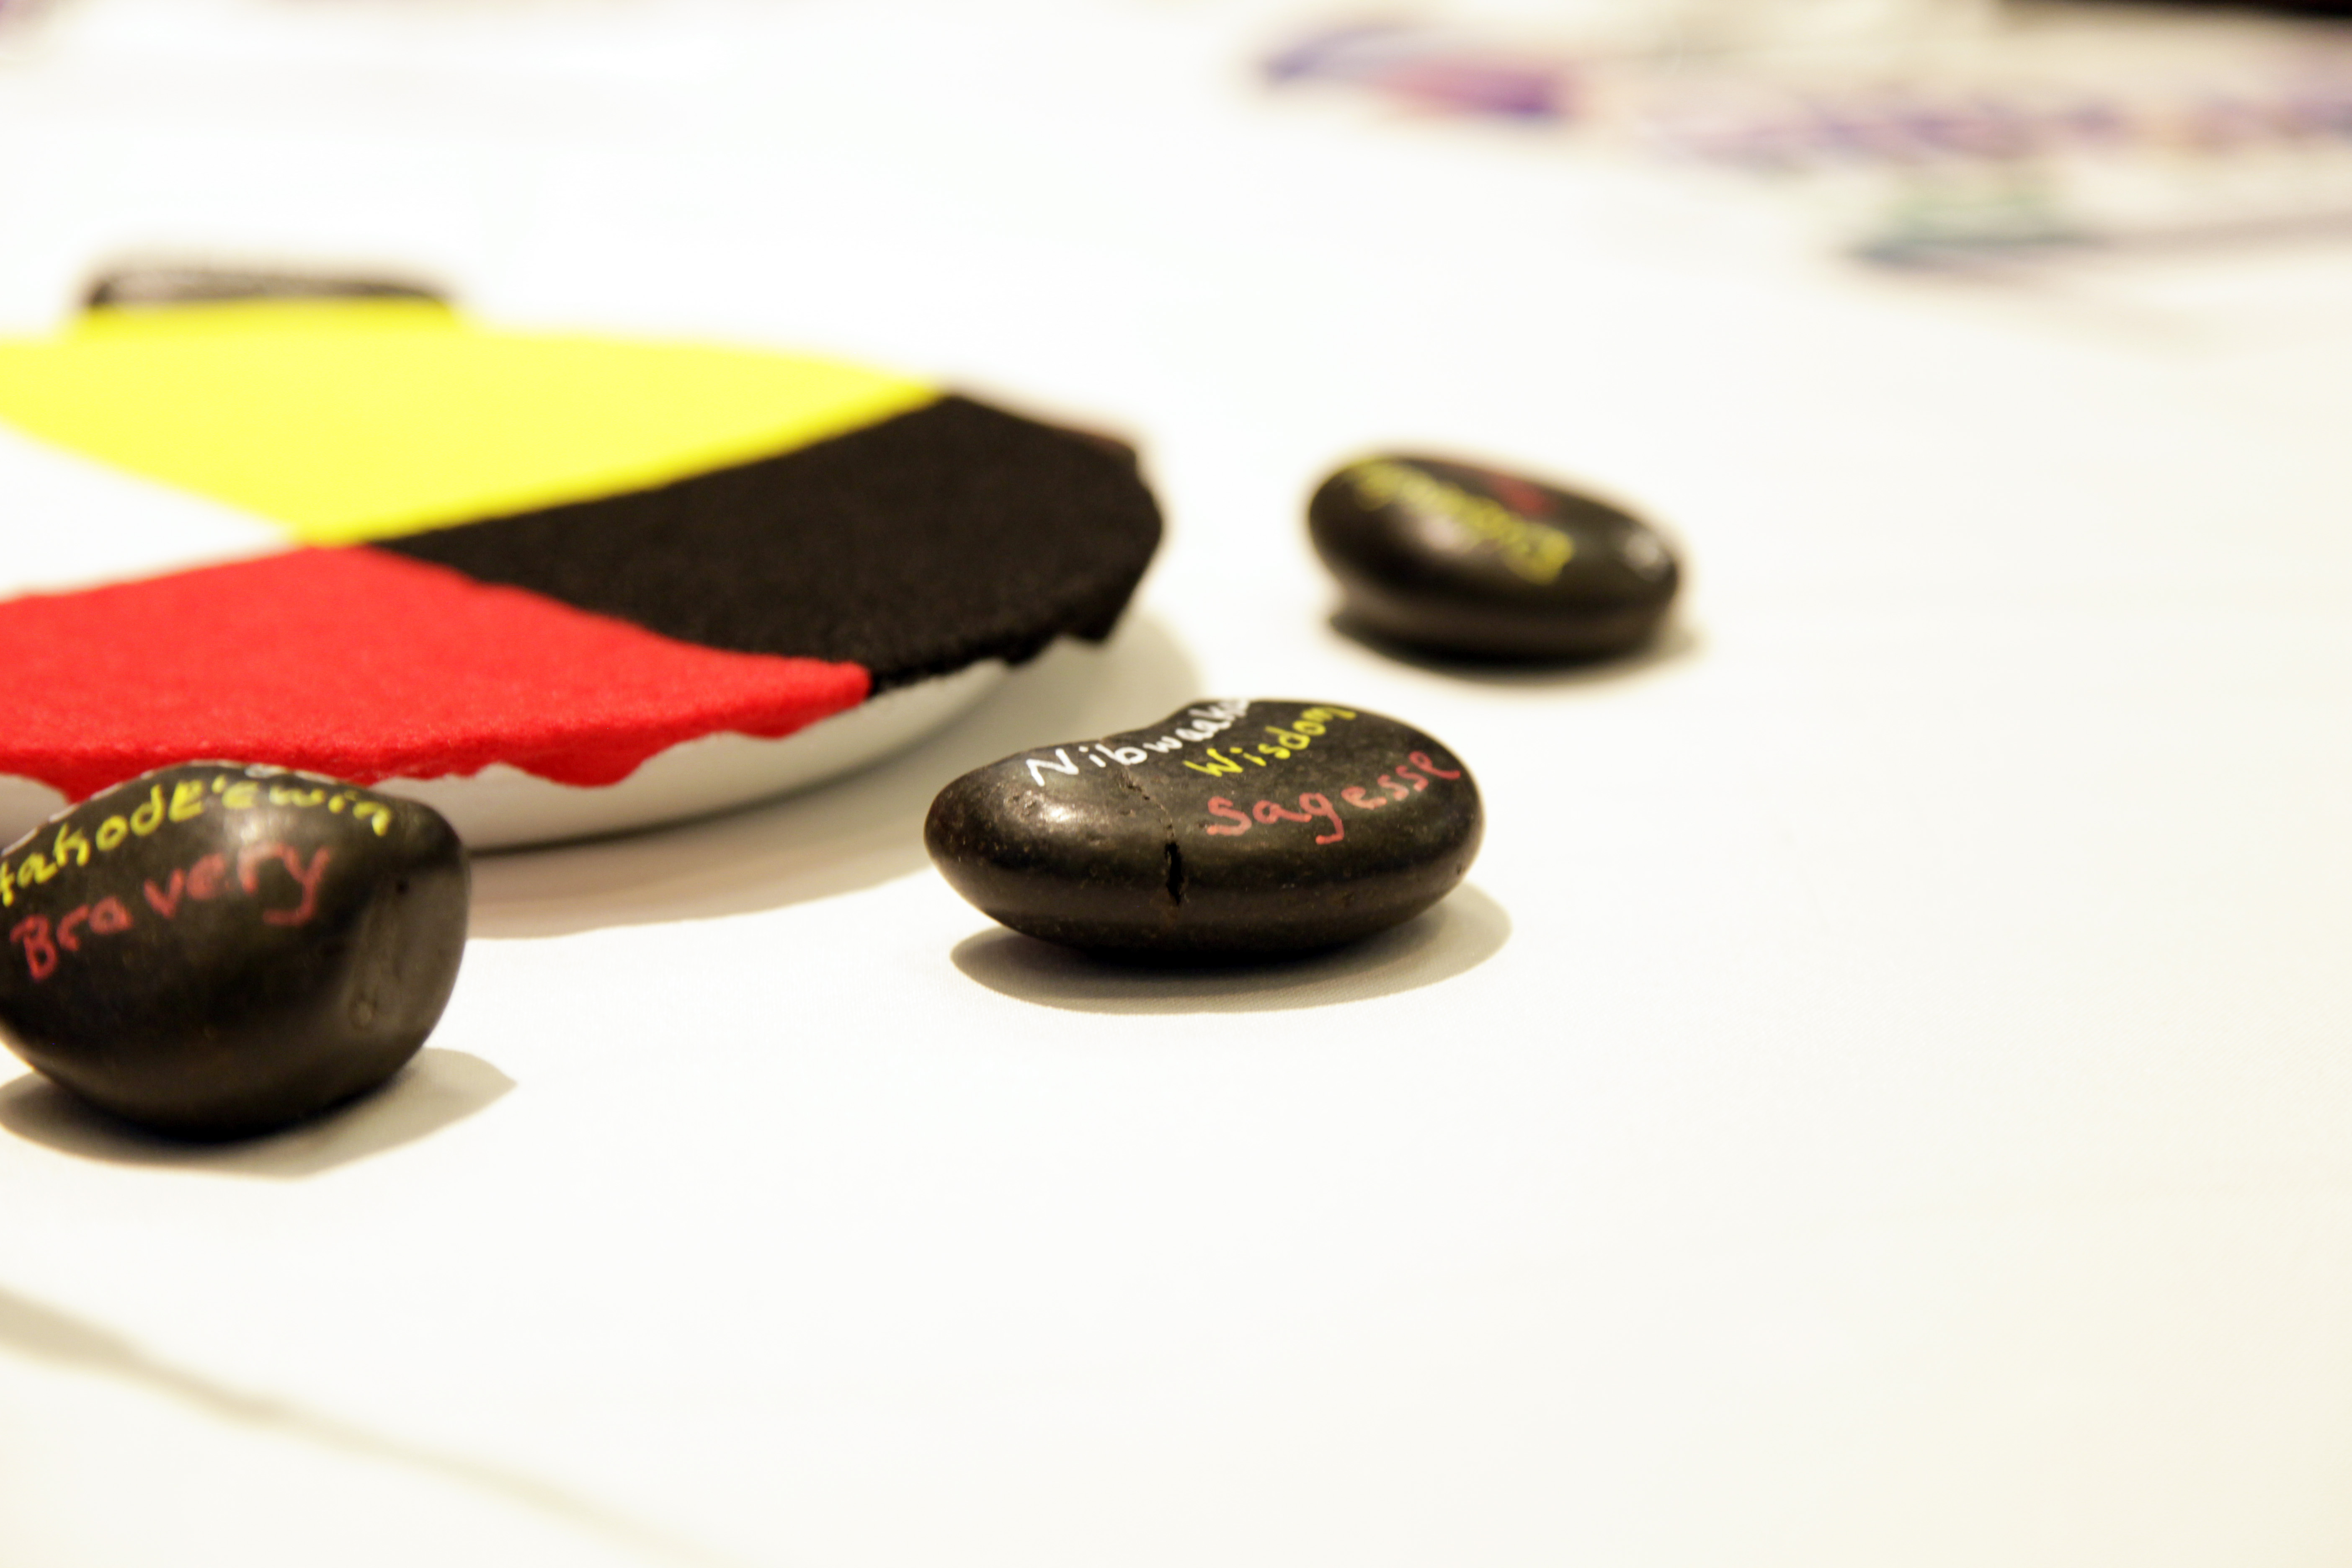 painted stones with words on a table